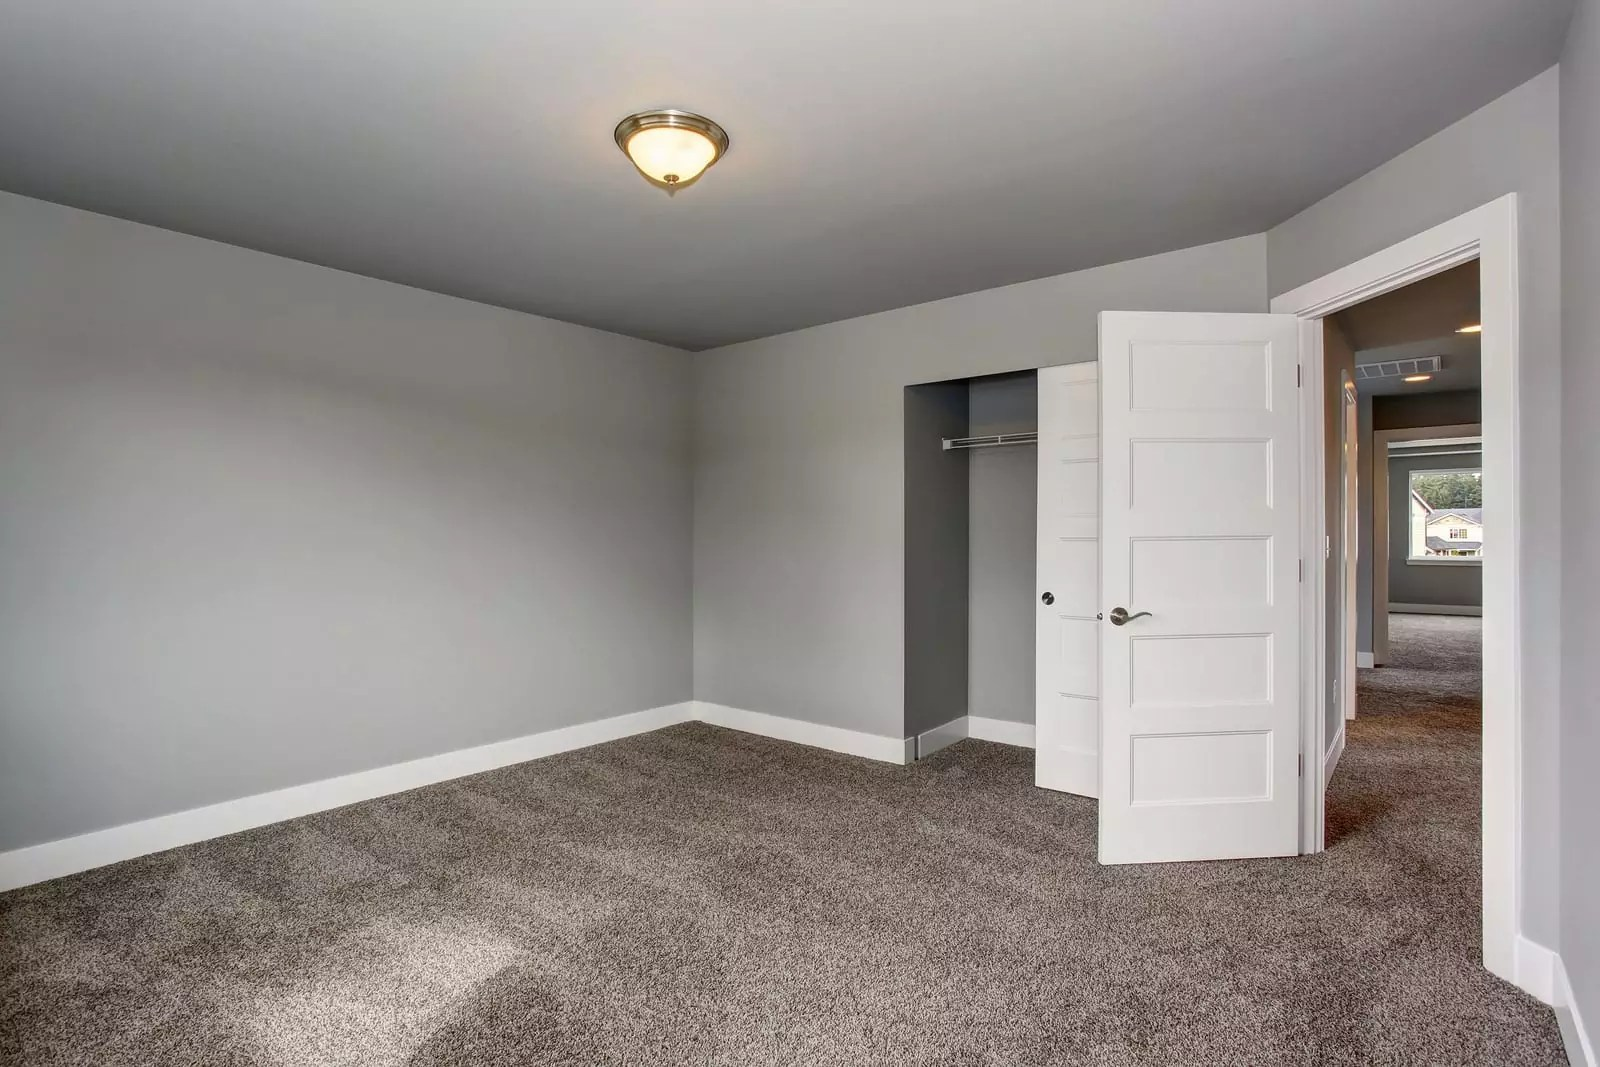 Basement Floor Paint Sherwin Williams Decorating